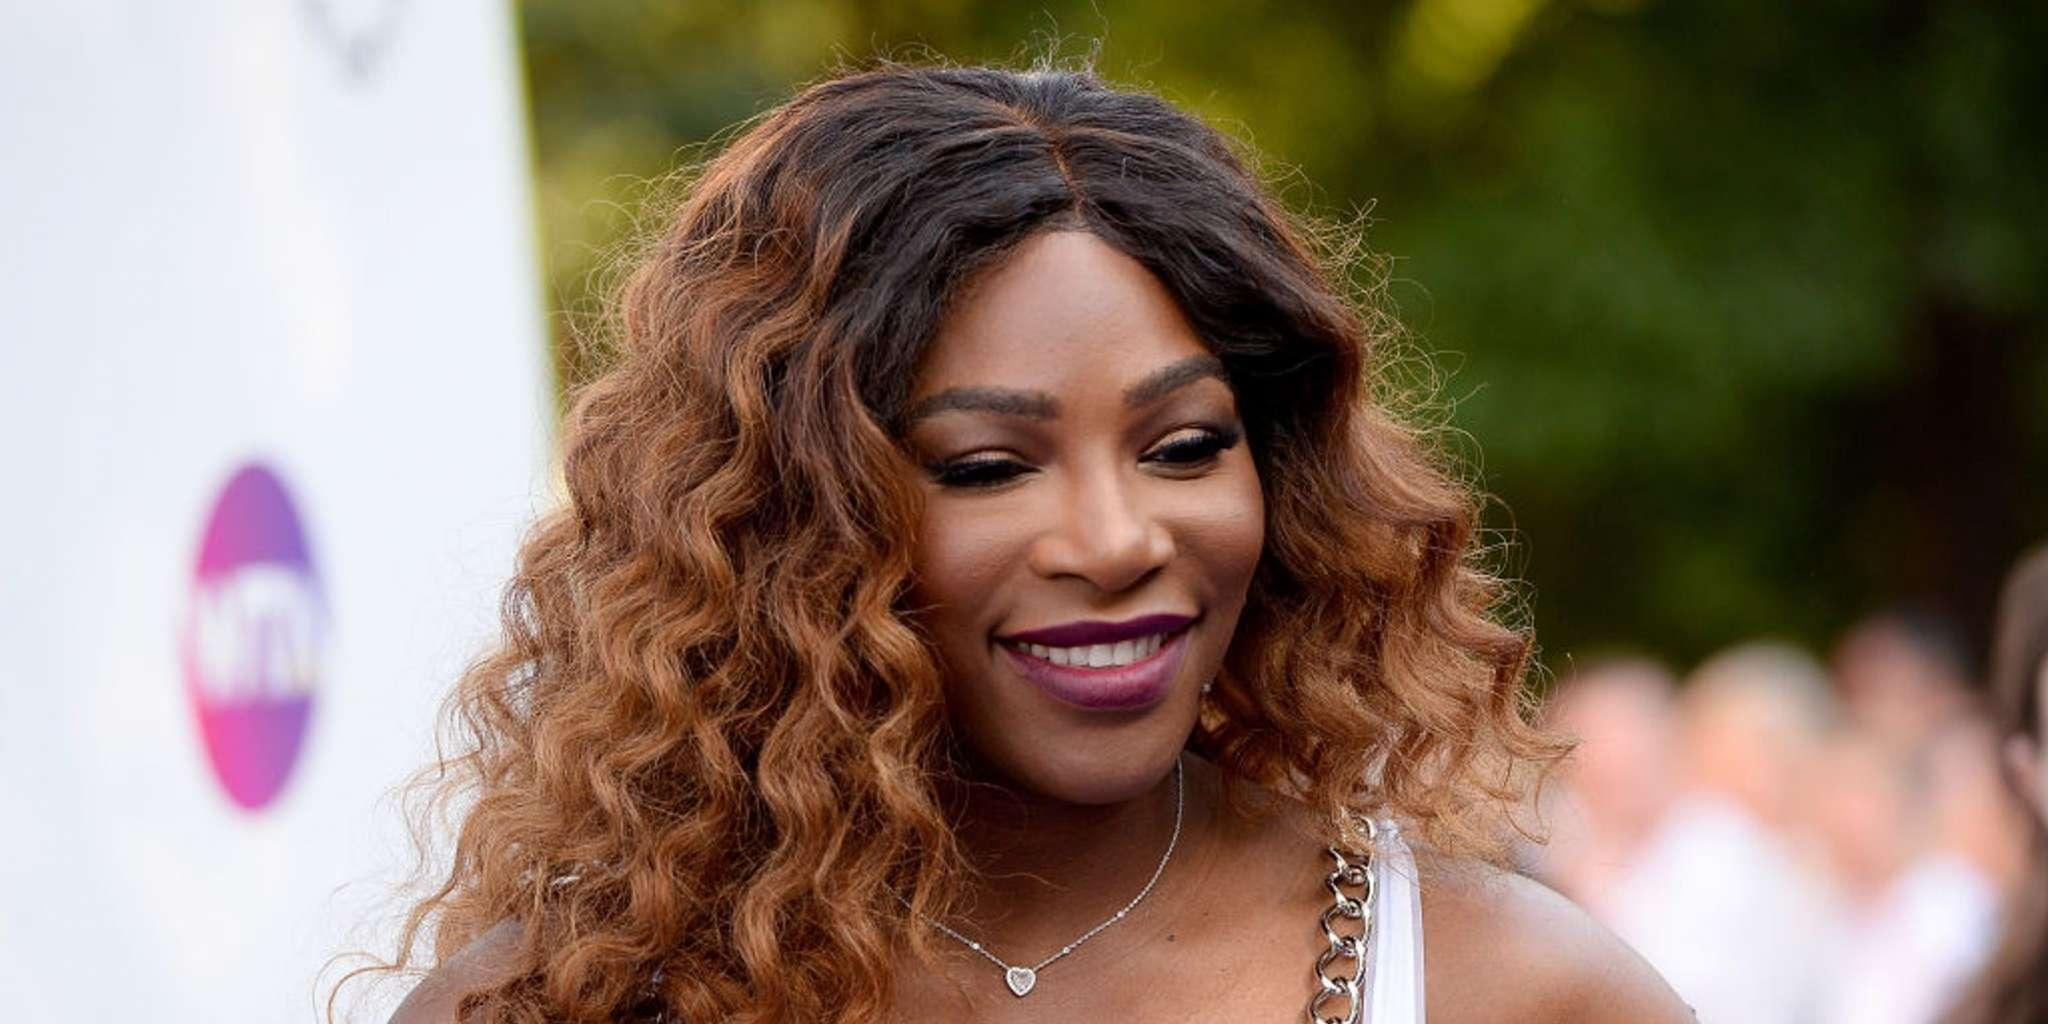 Serena Williams Rocks Fishnets And A Teal Romper At The Australian Open And Everyone Is A Fan!